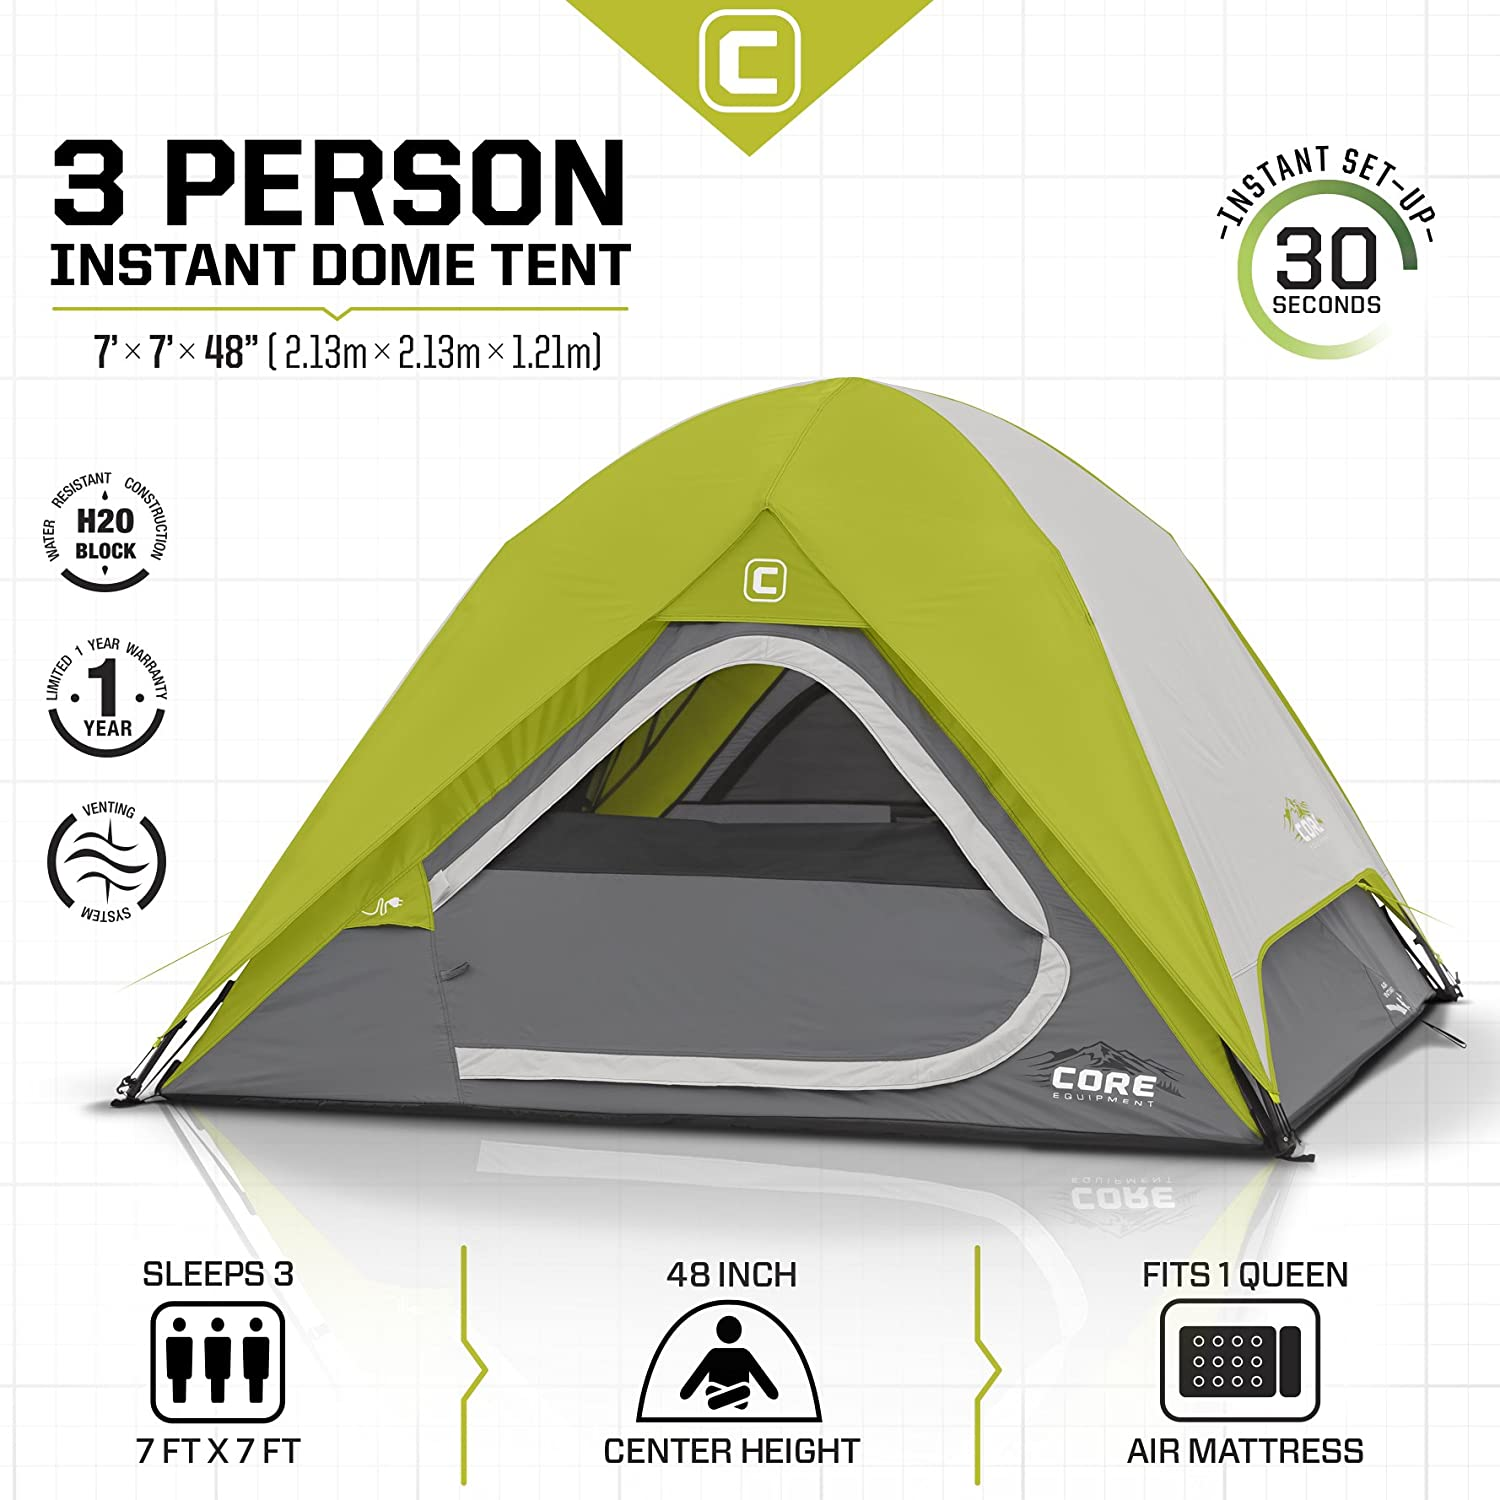 Amazon.com : CORE 3 Person Instant Dome Tent - 7' x 7' : Sports & Outdoors